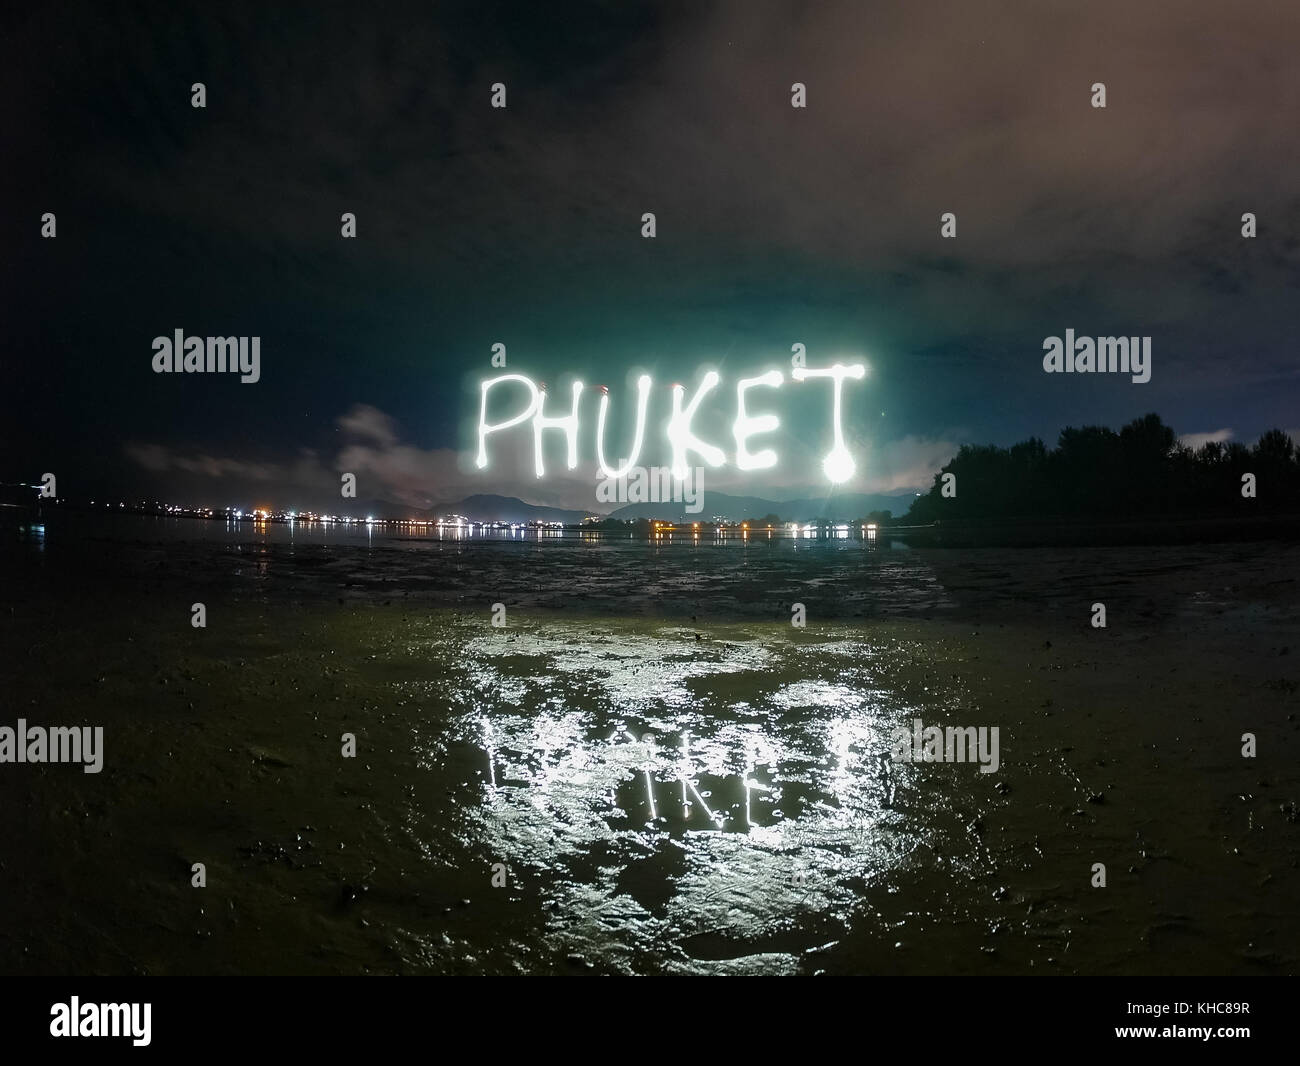 Phuket Text Word Made From Sparkle Light Paining In The Dark Night